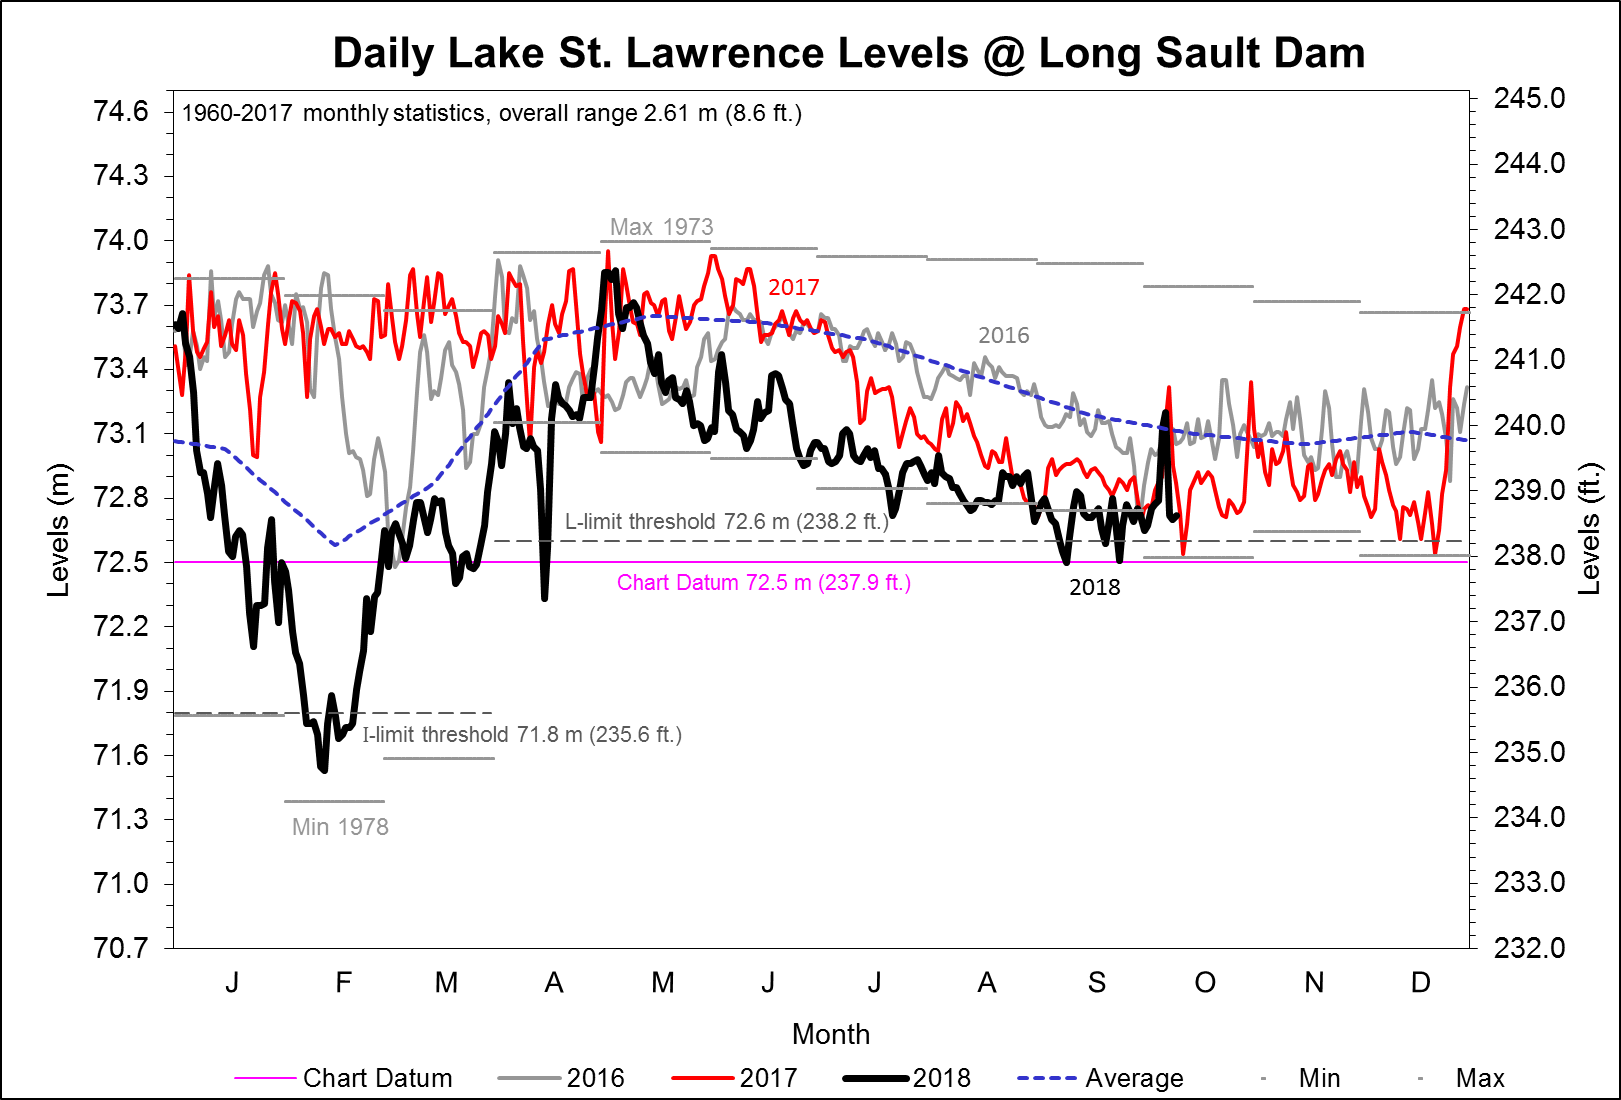 Daily Lake St. Lawrence Levels